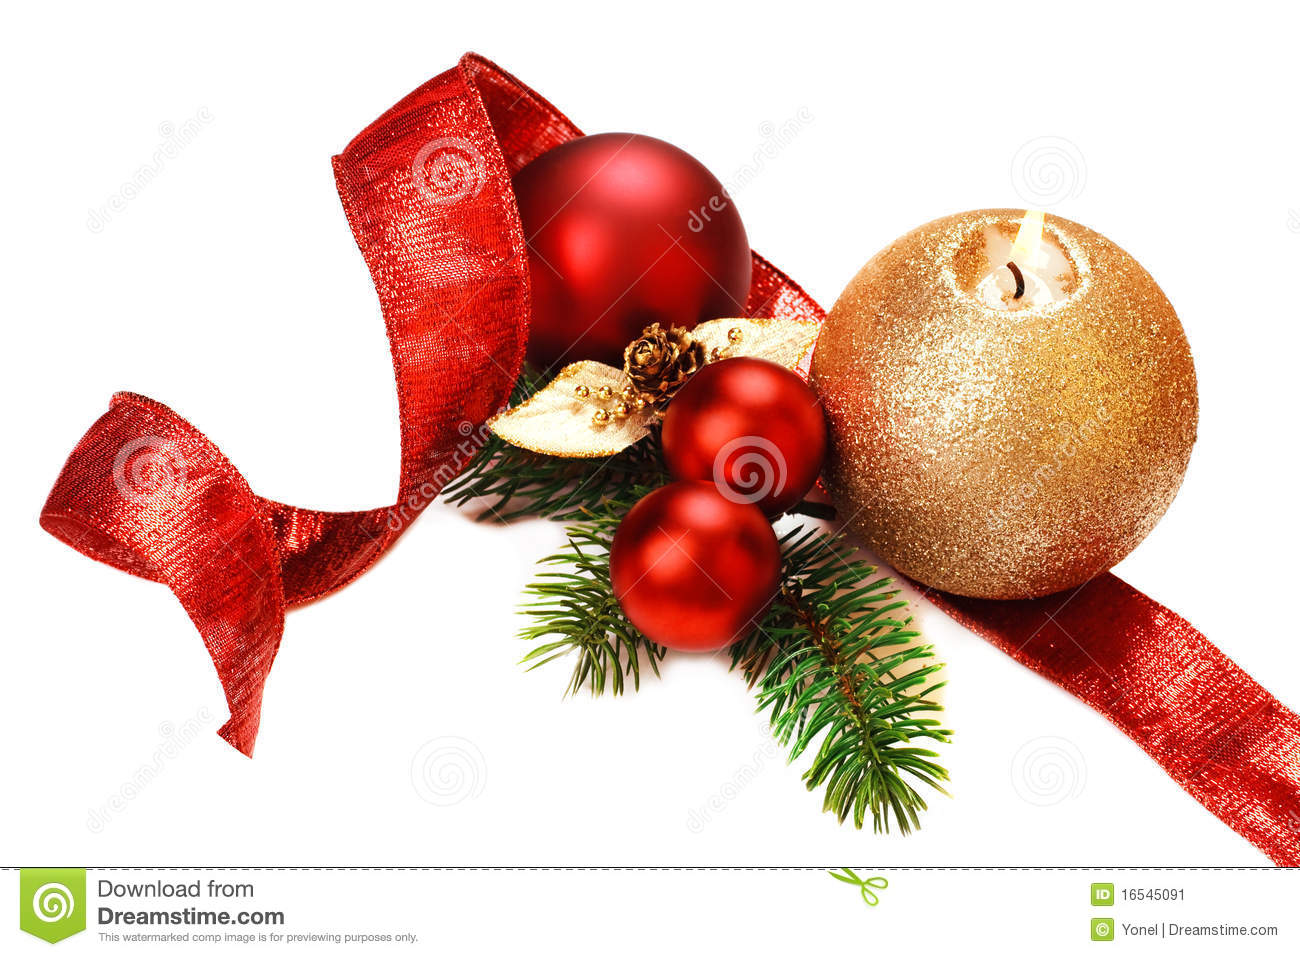 Christmas decorations on white background stock image for Background decoration images